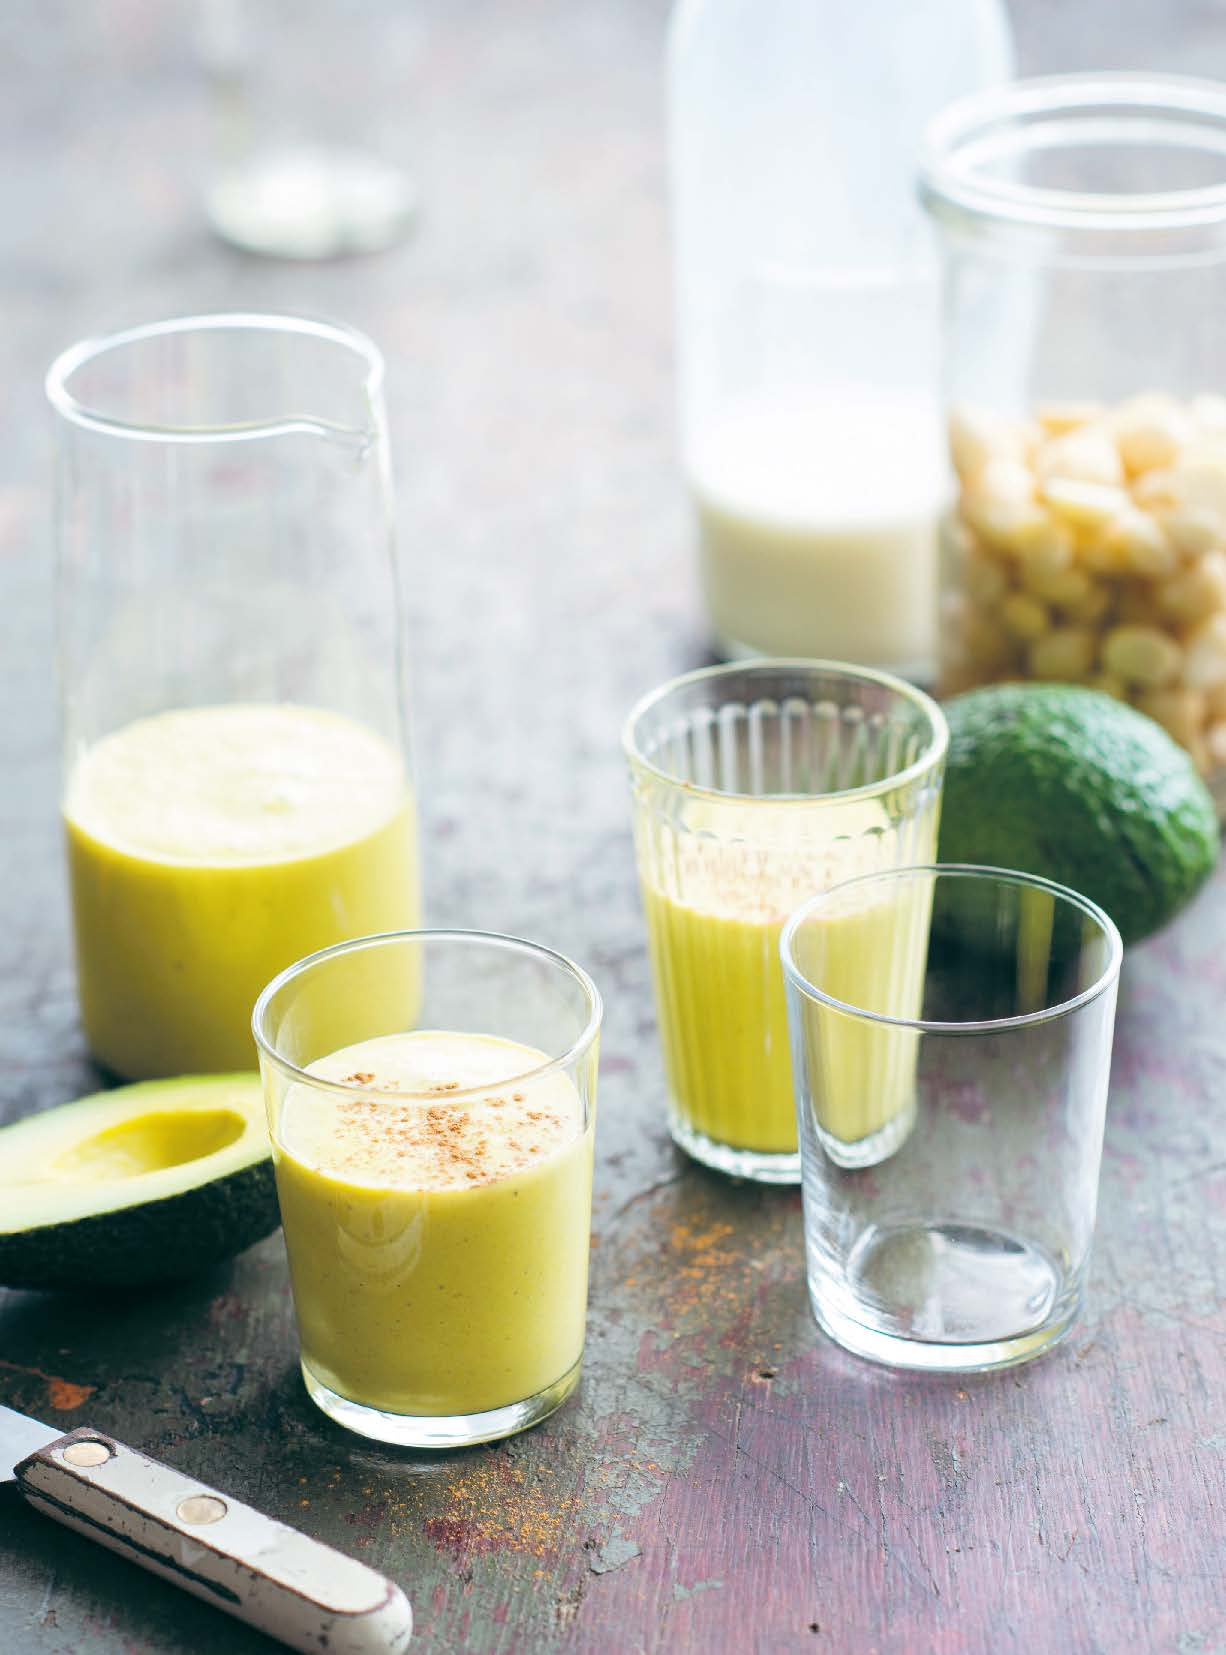 Chilled avocado, turmeric and cashew nut soup